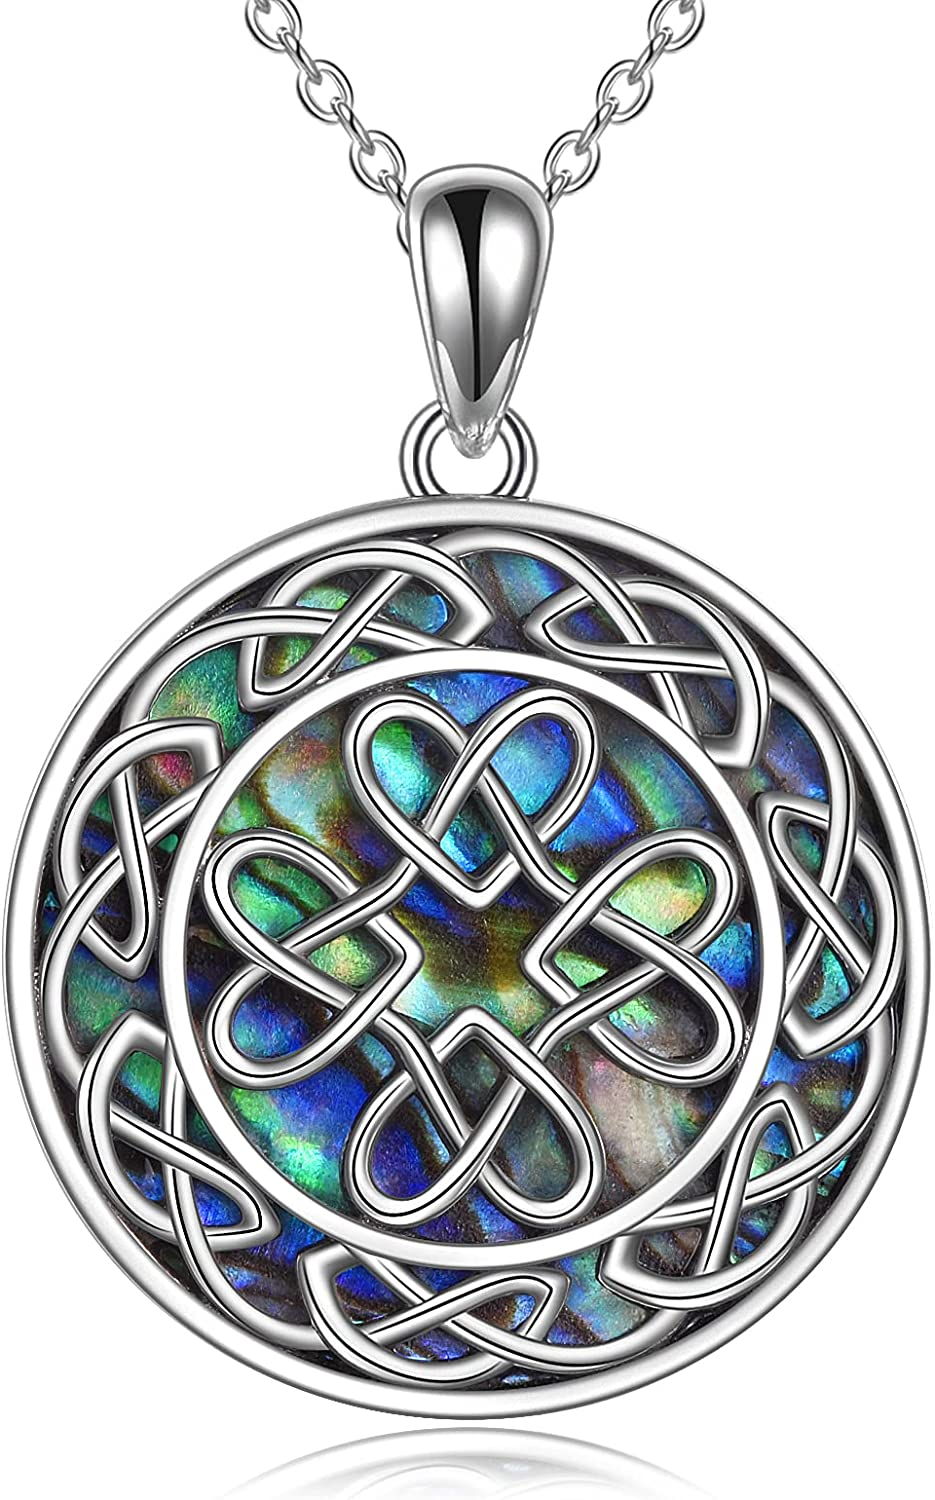 POPLYKE Viking Celtic Triskele Trinity Ranking TOP7 Outstanding Cross Necklace with Knot